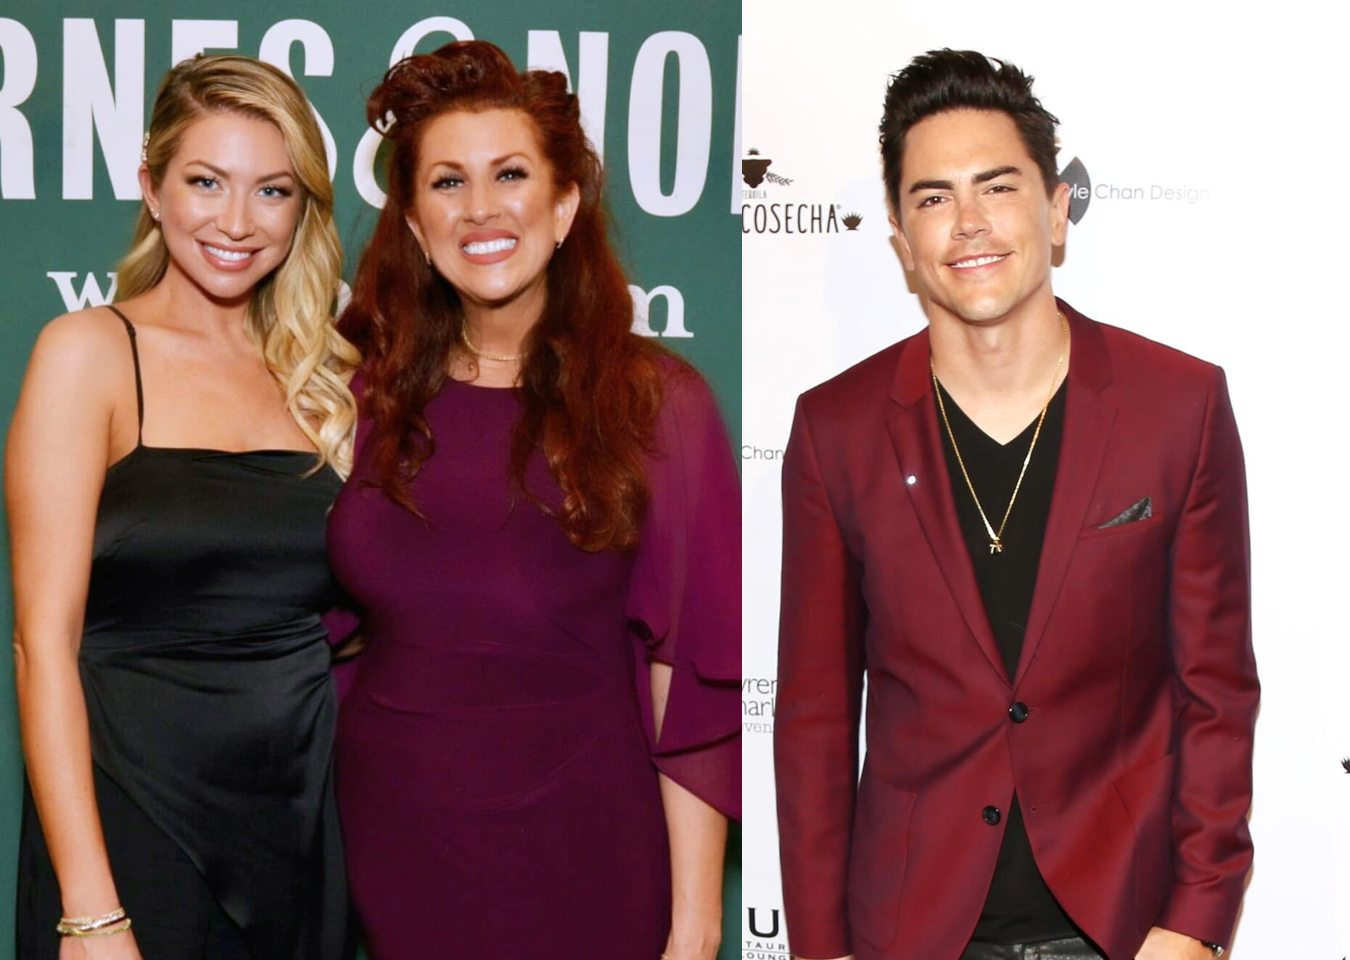 Vanderpump Rules' Tom Sandoval is Called Out for Mistreating Stassi Schroeder's Mom at Jax Taylor's Wedding as He and Jax Feud on Social Media Over Cash Bar Drama